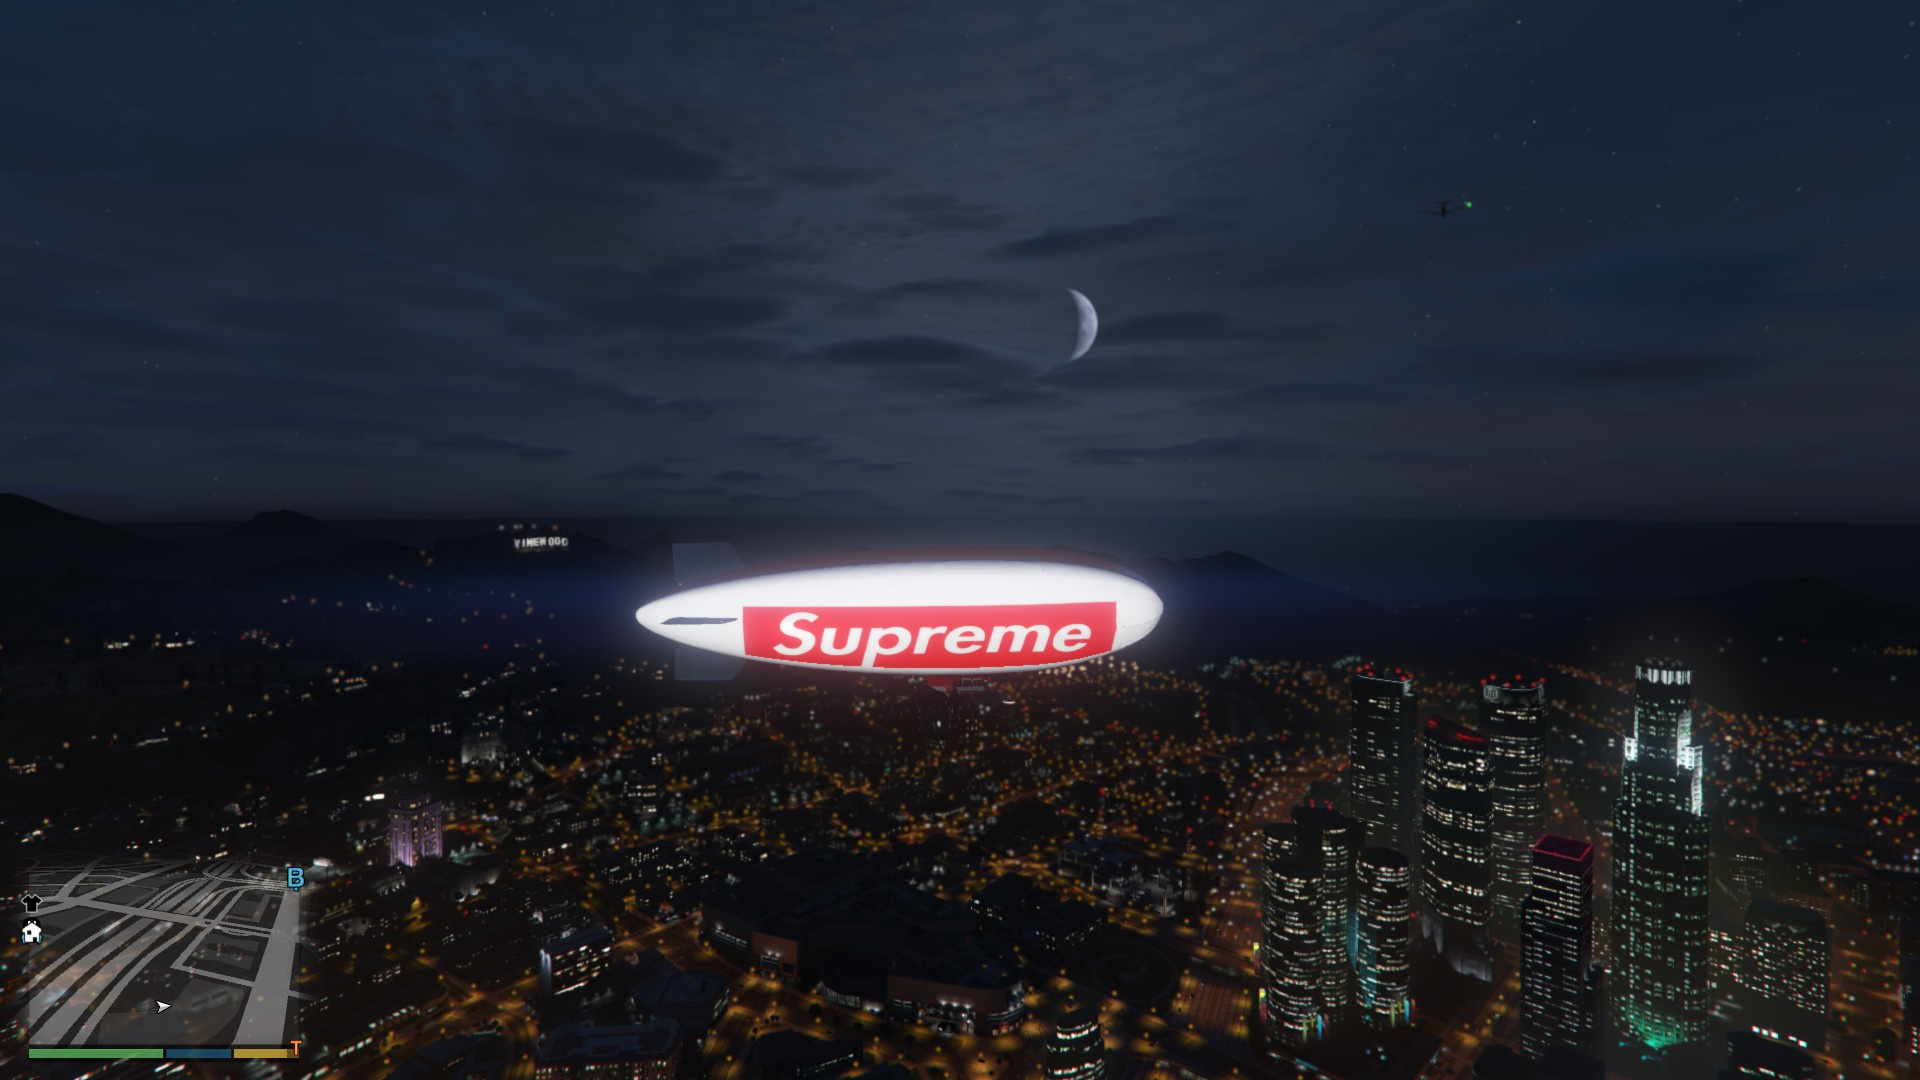 Supreme Blimp [HD] [Atomic Blimp Reskin] - GTA5-Mods.com